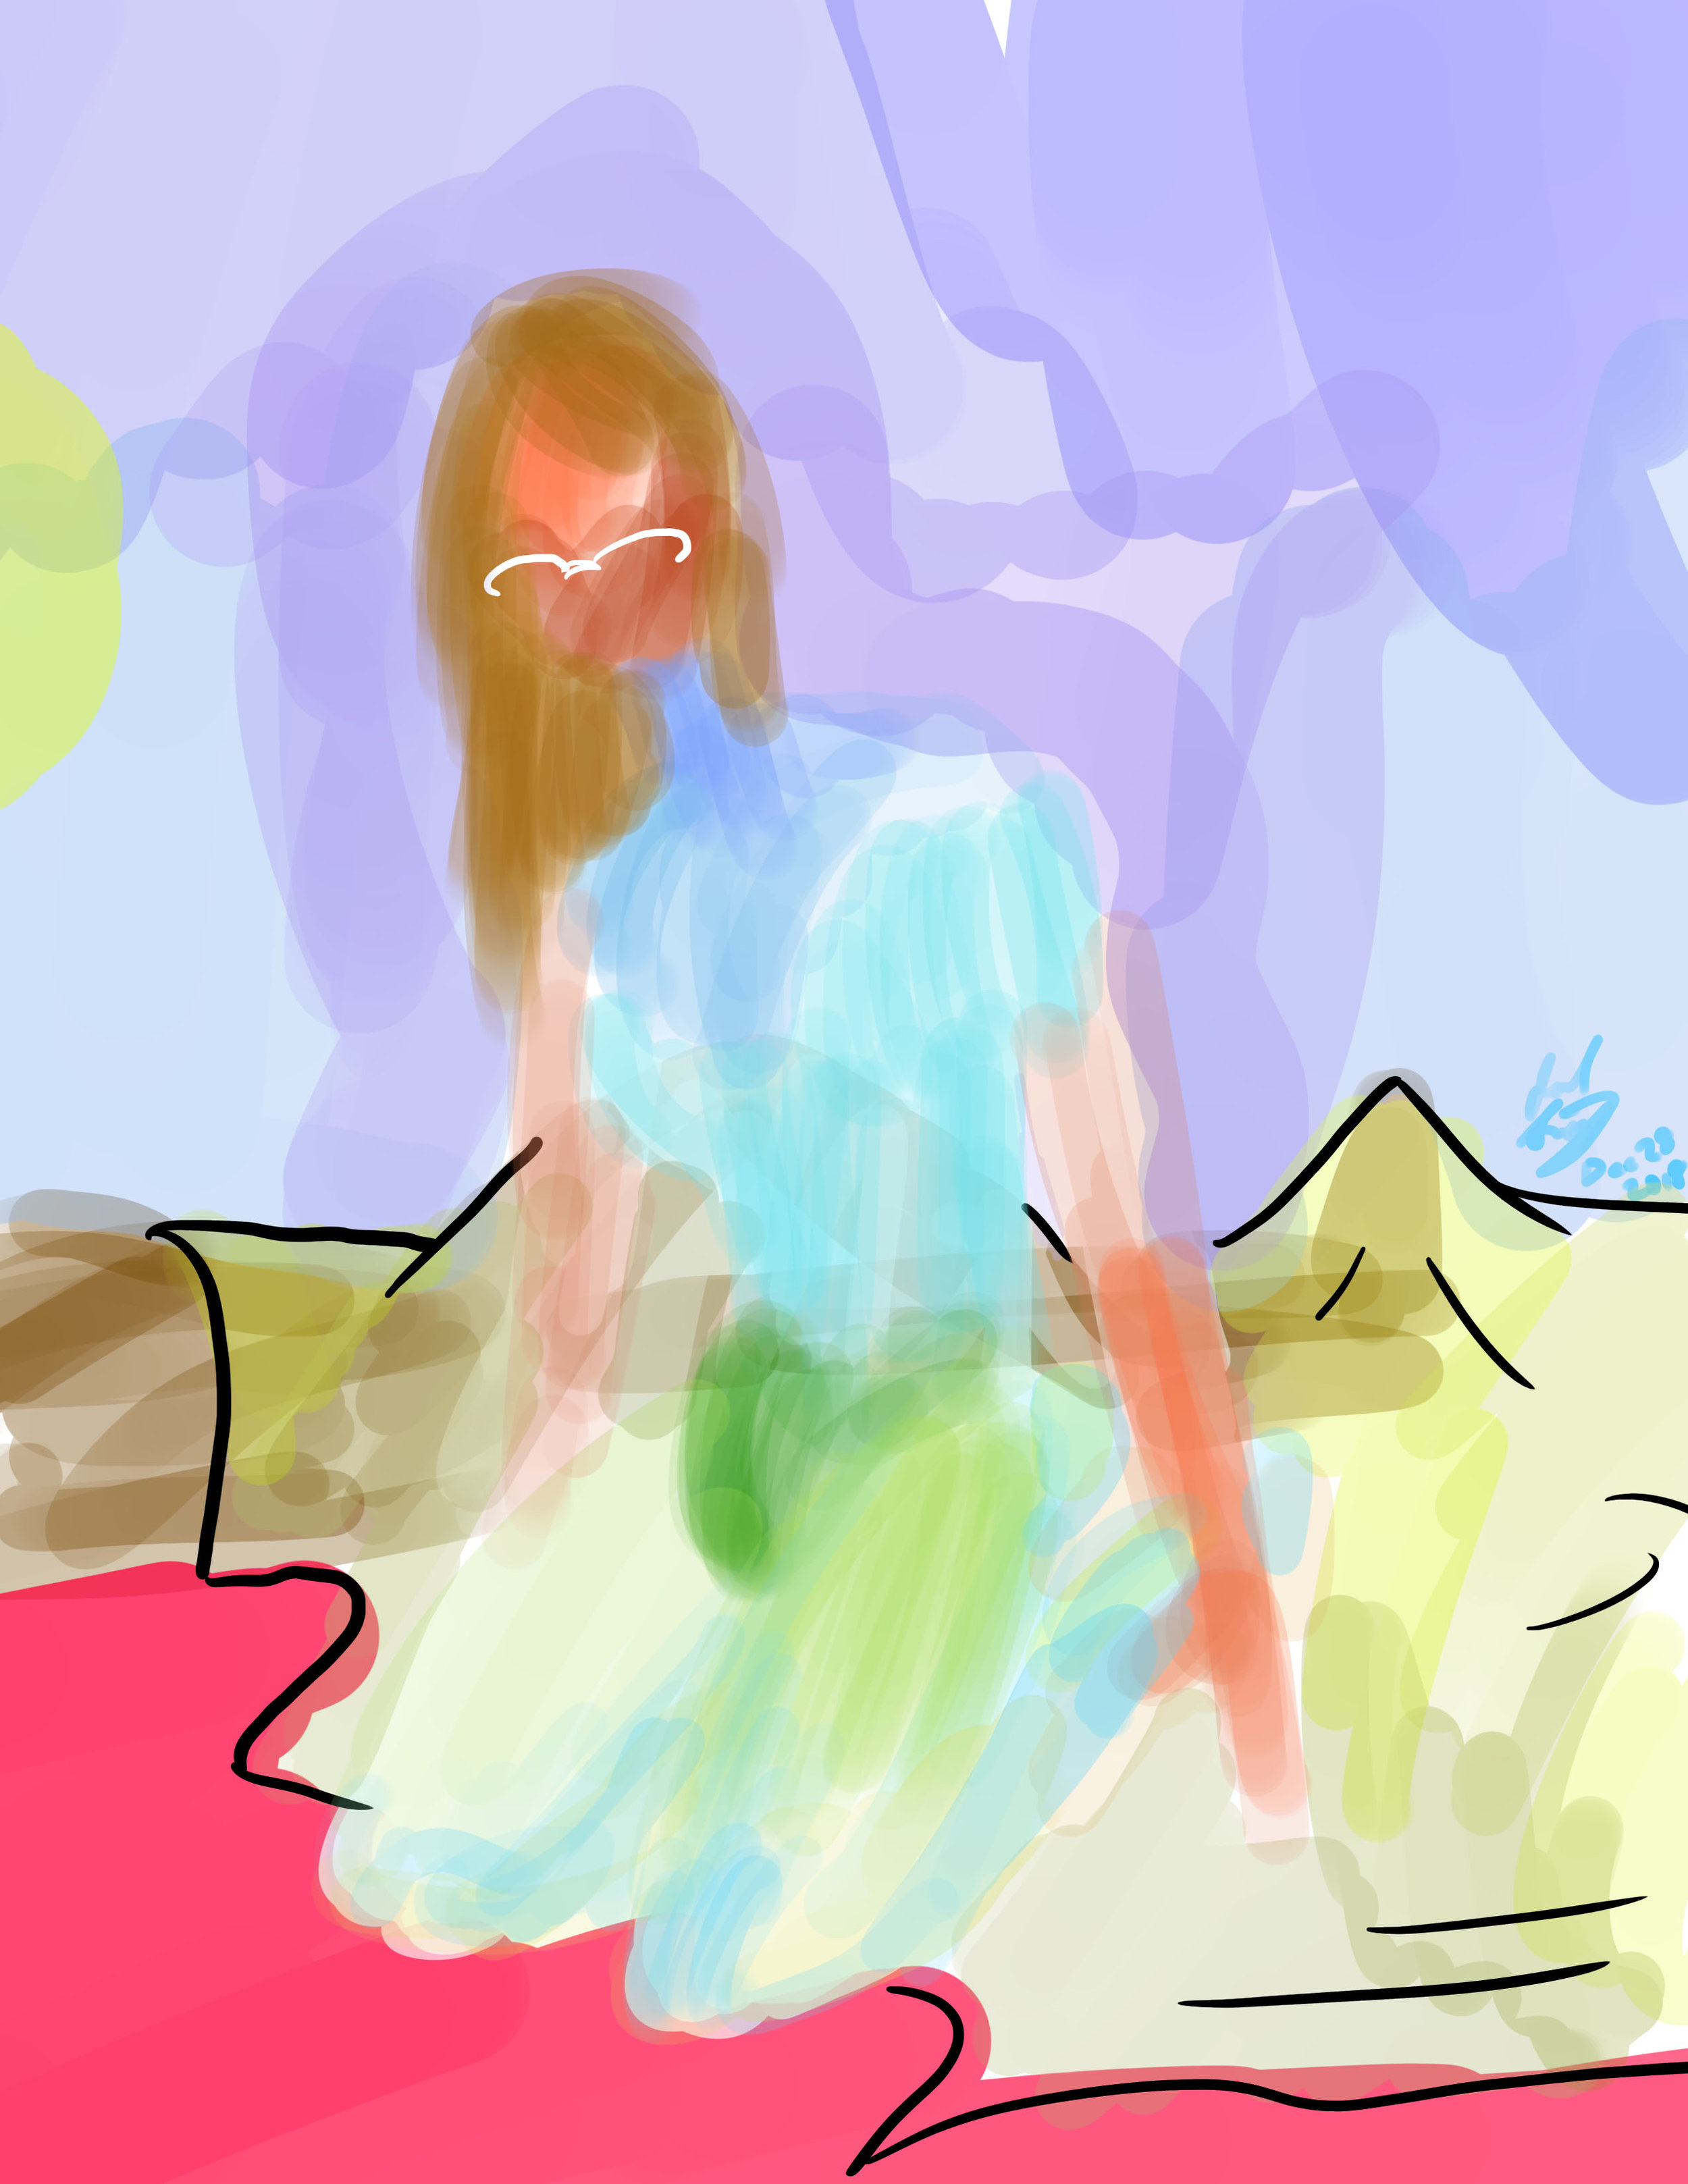 Woman on Bed/Island